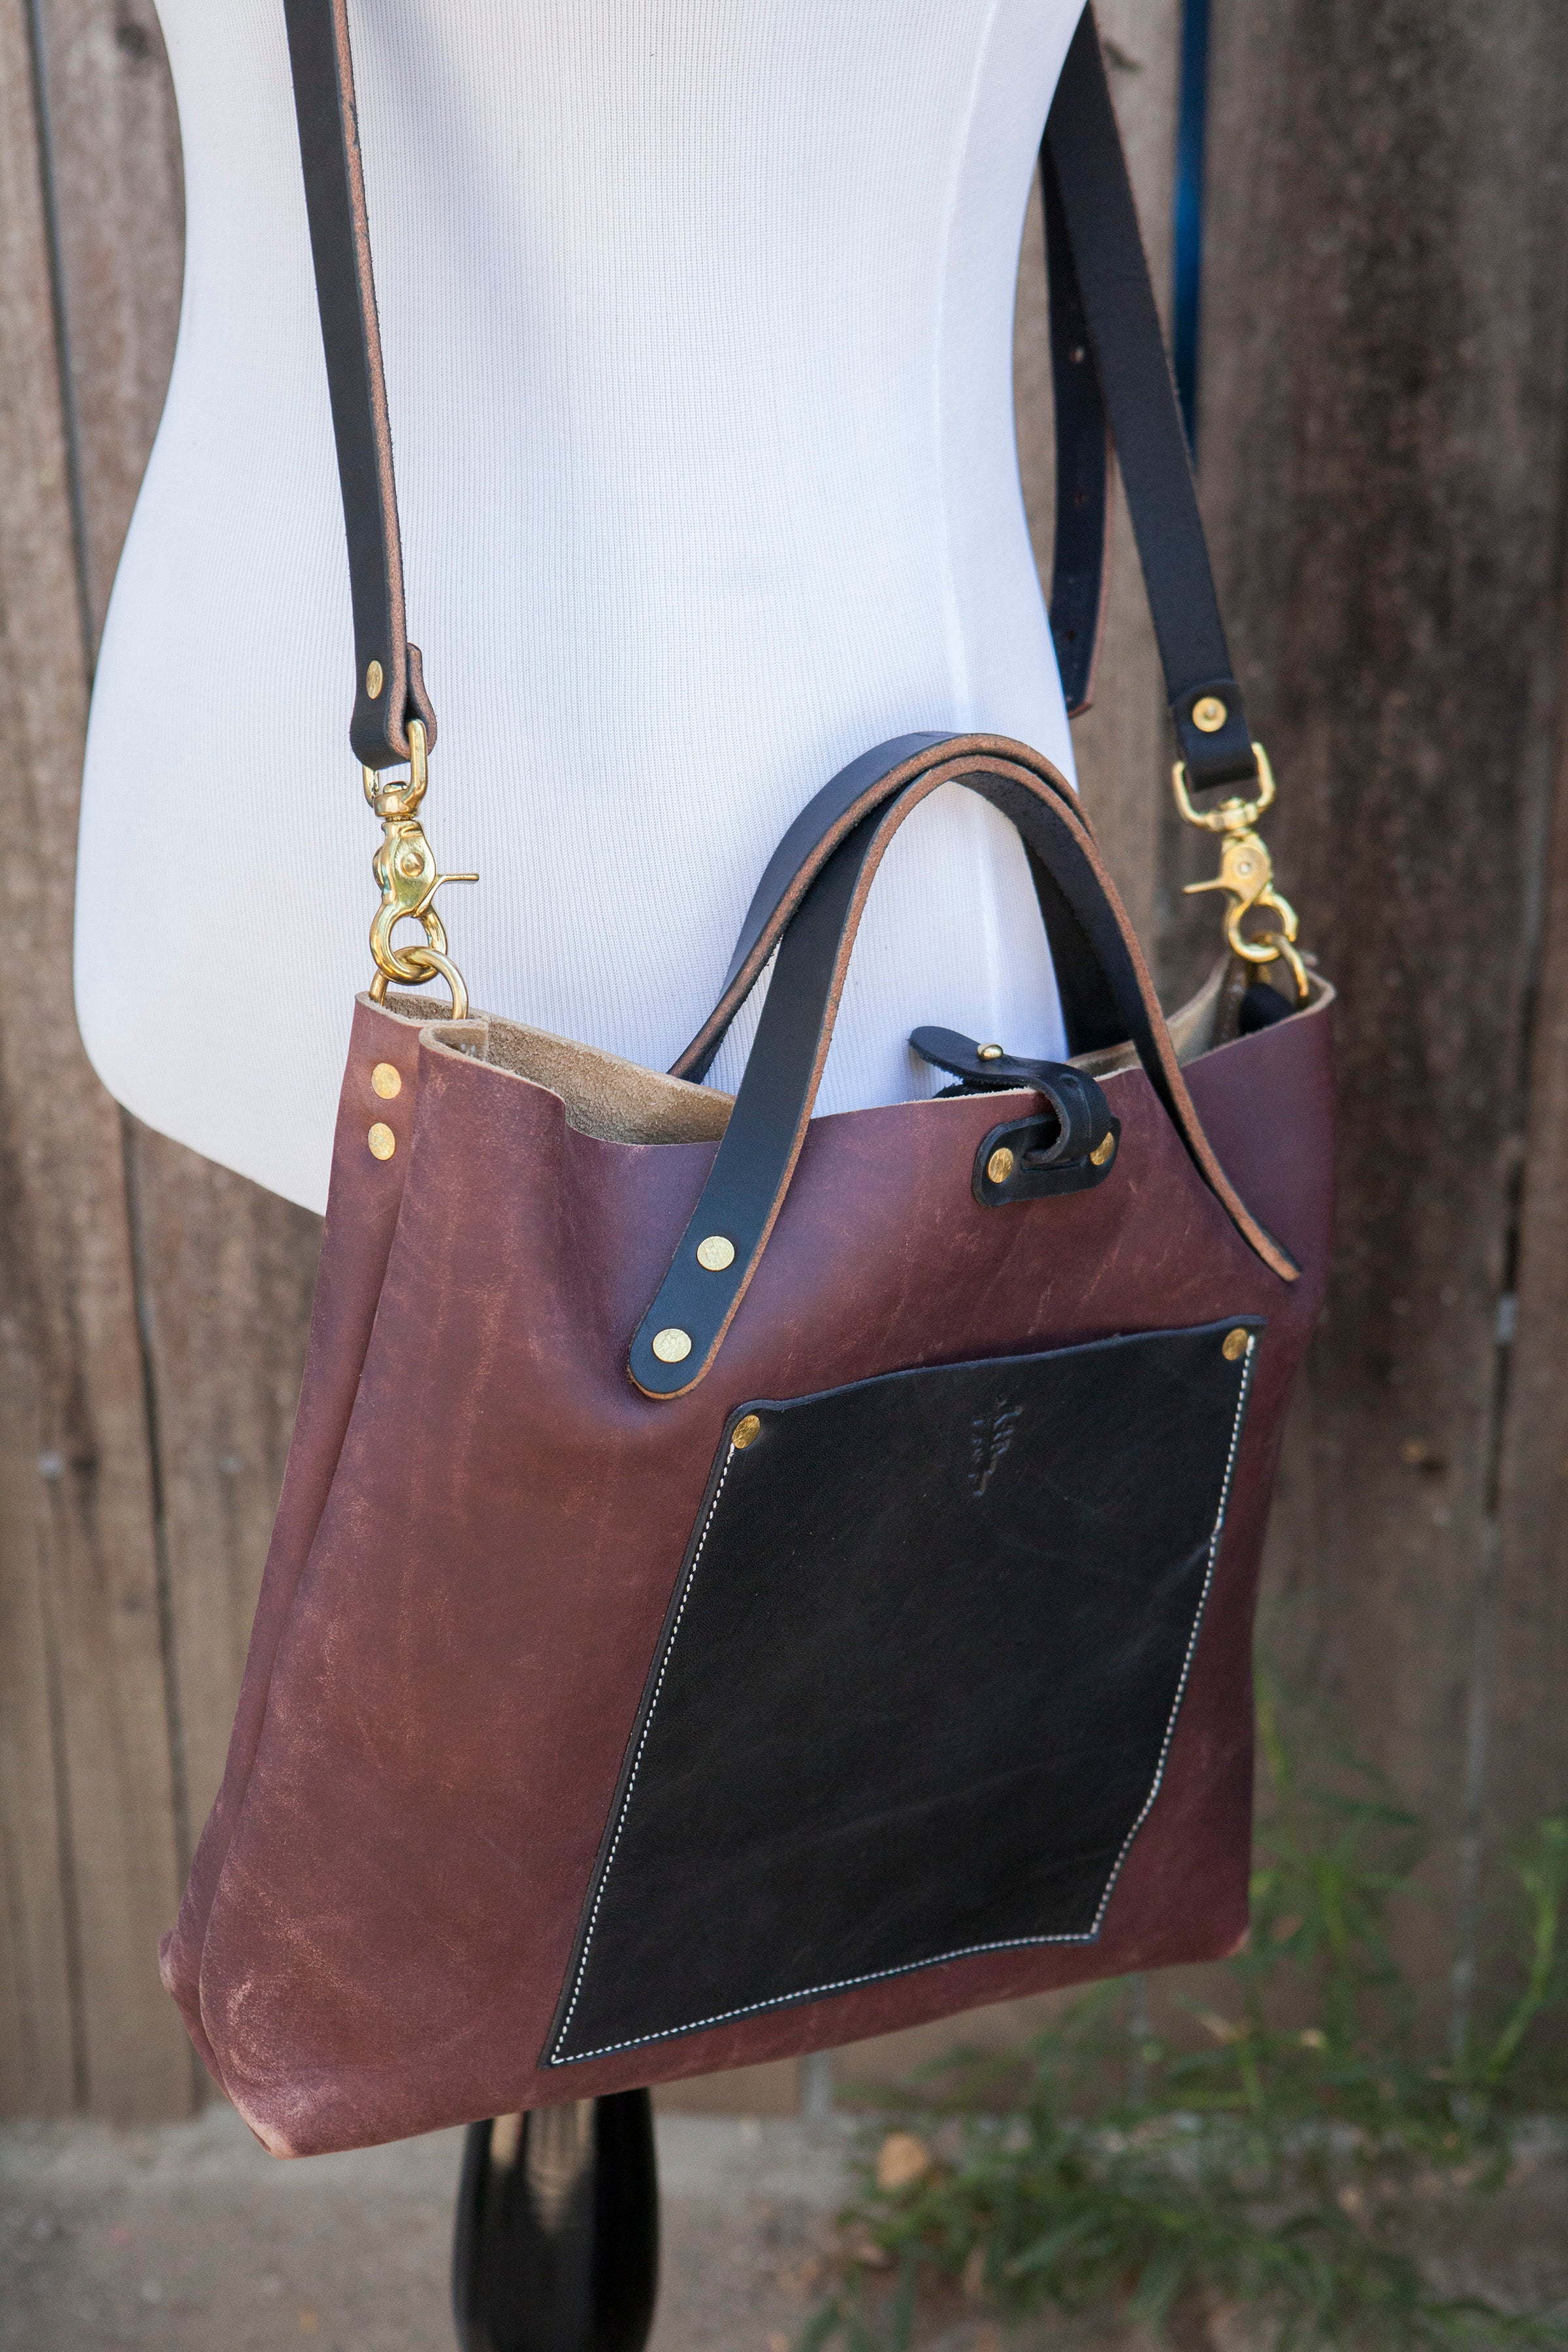 30a9267a0009 Brown Crossbody Bag with Contrasting Black Bridle Handle Shoulder Stra –  Pigeon Tree Crafting